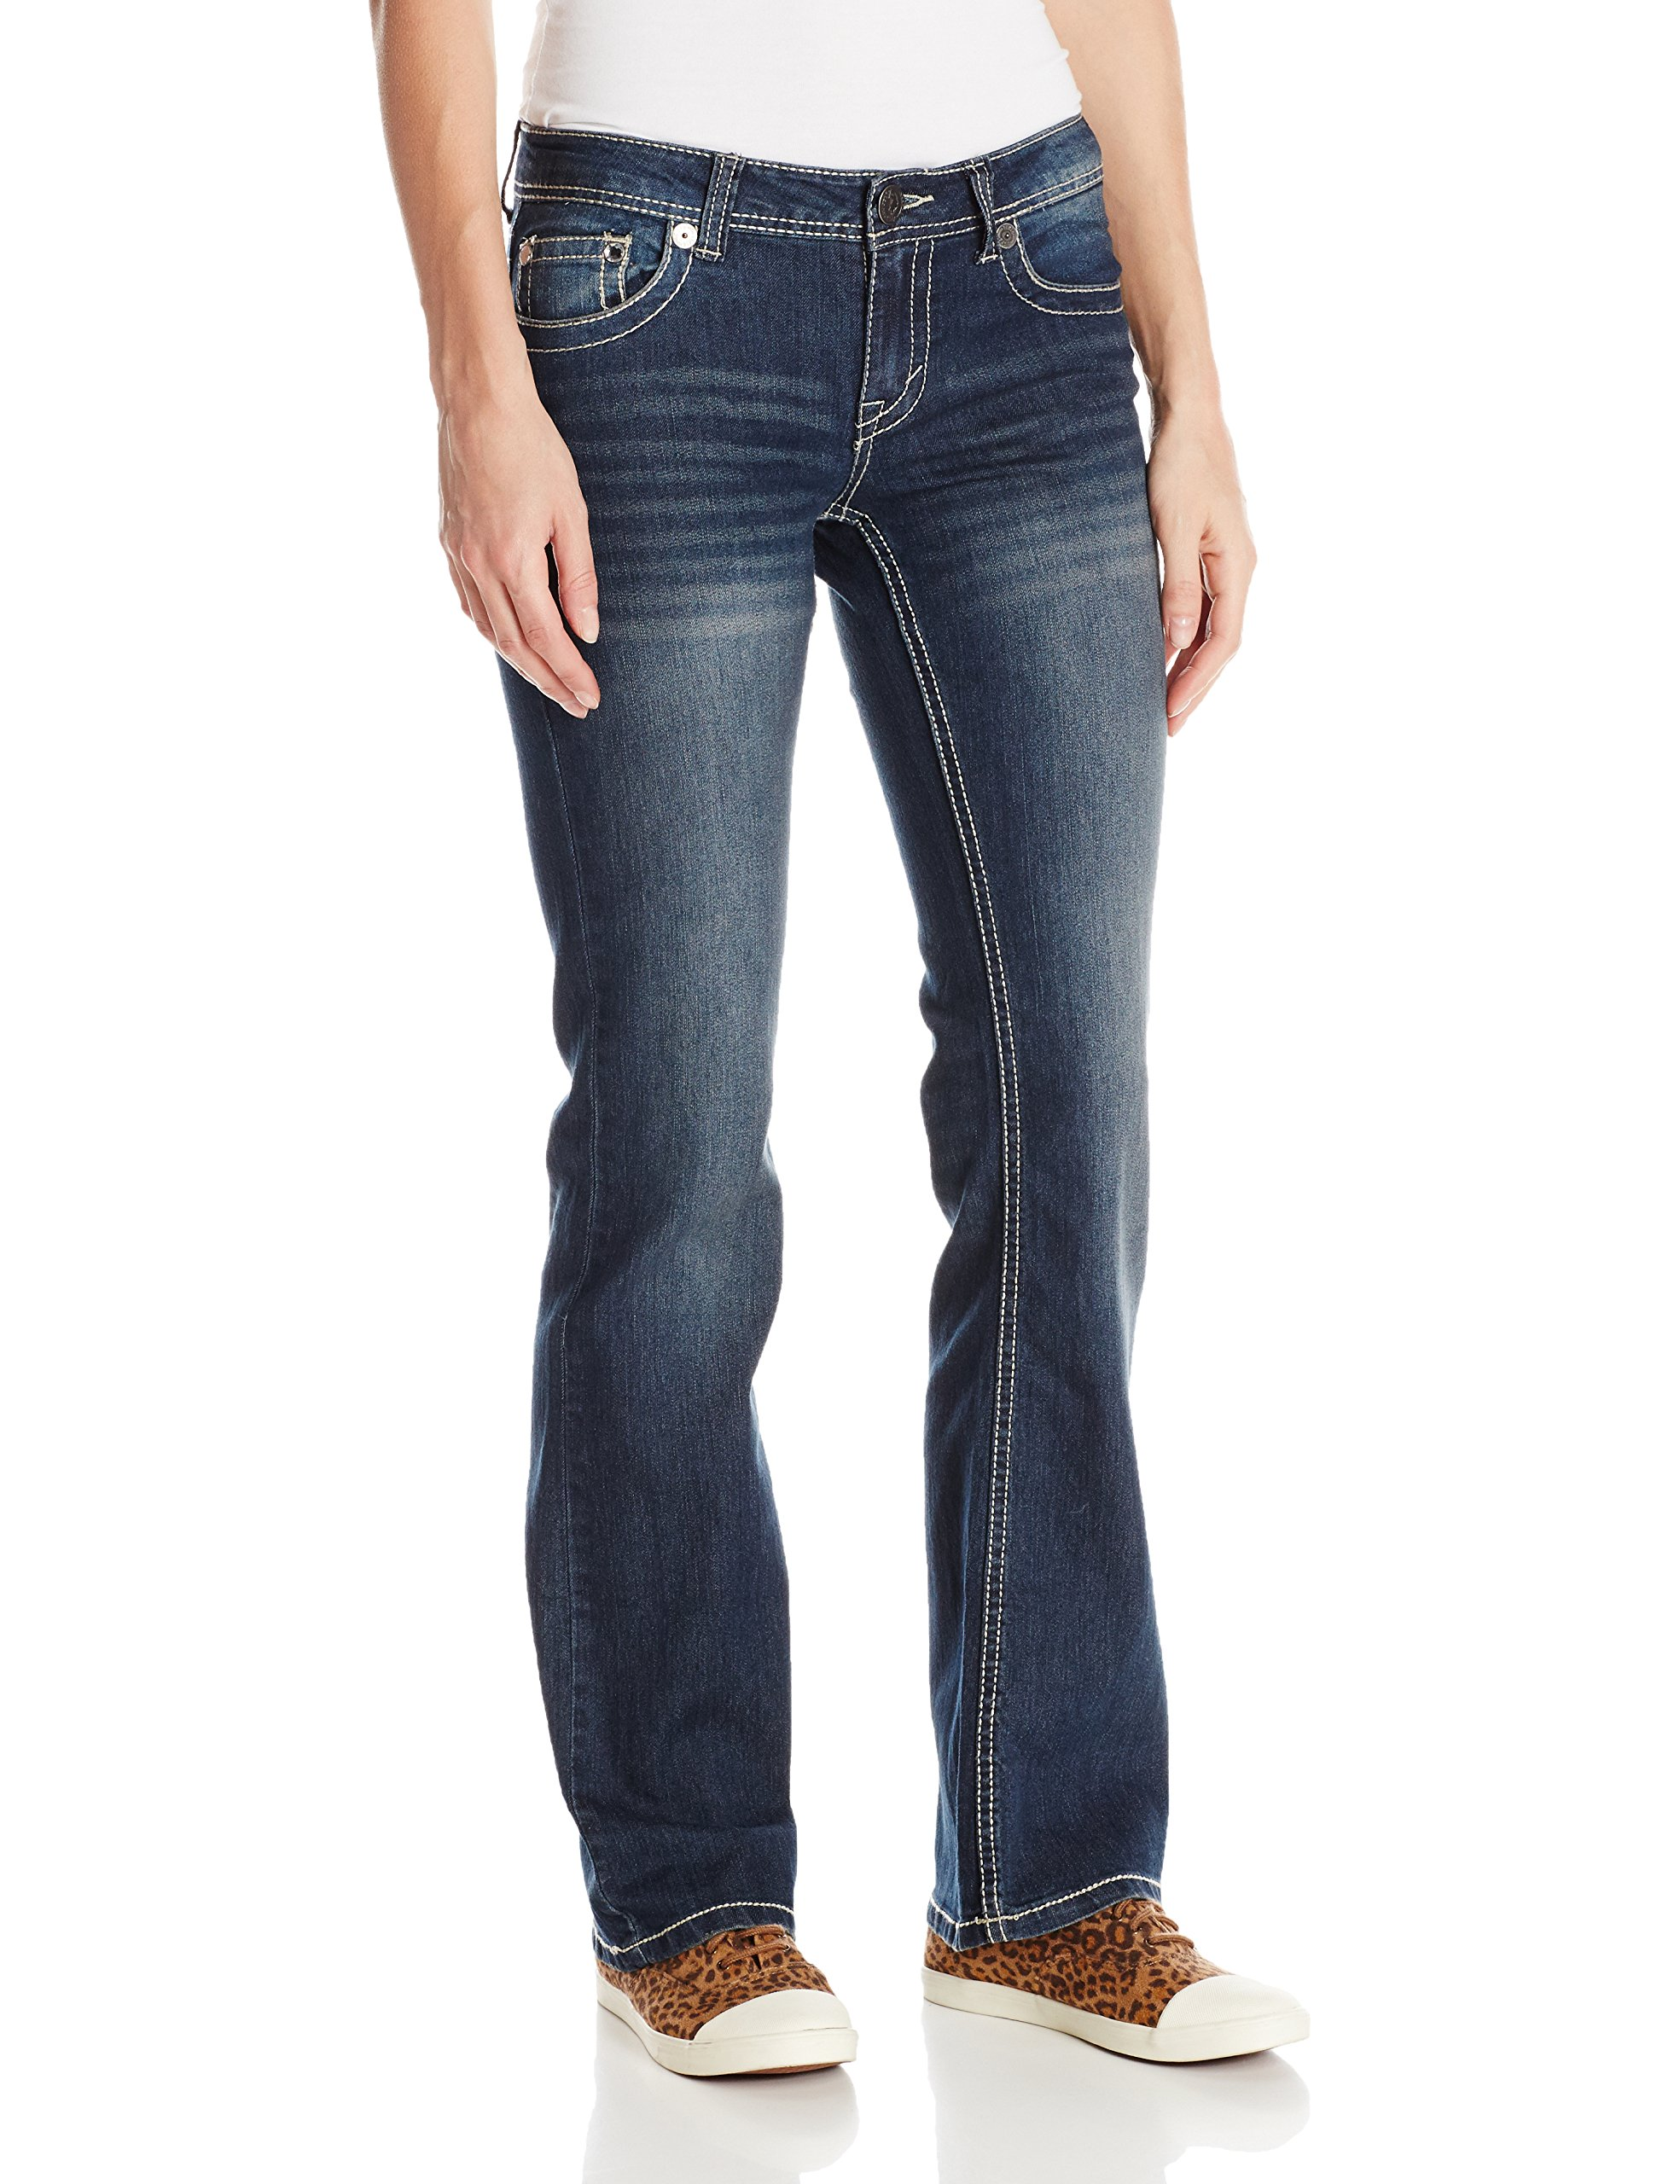 U.S. Polo Assn.. Women's Noelle Boot Cut Jean, Super Dark Indigo-1484, 9